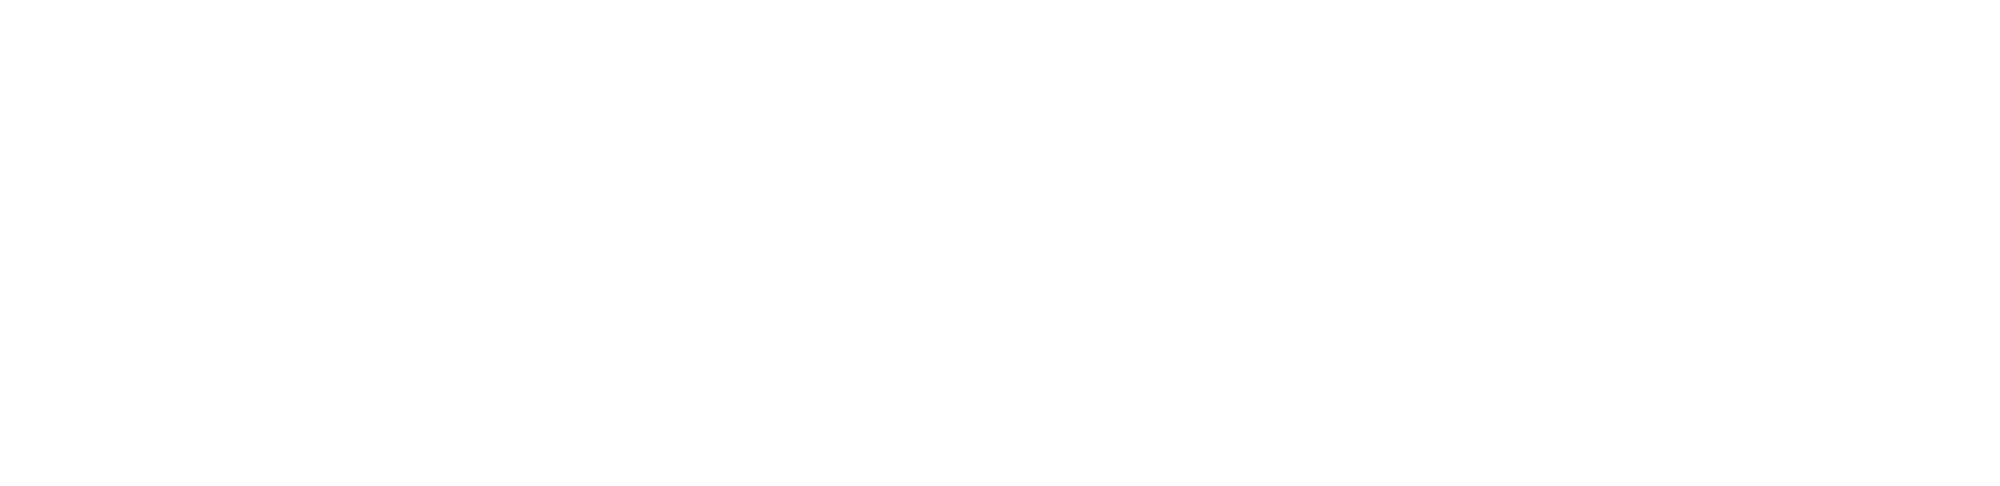 reliable office cleaning